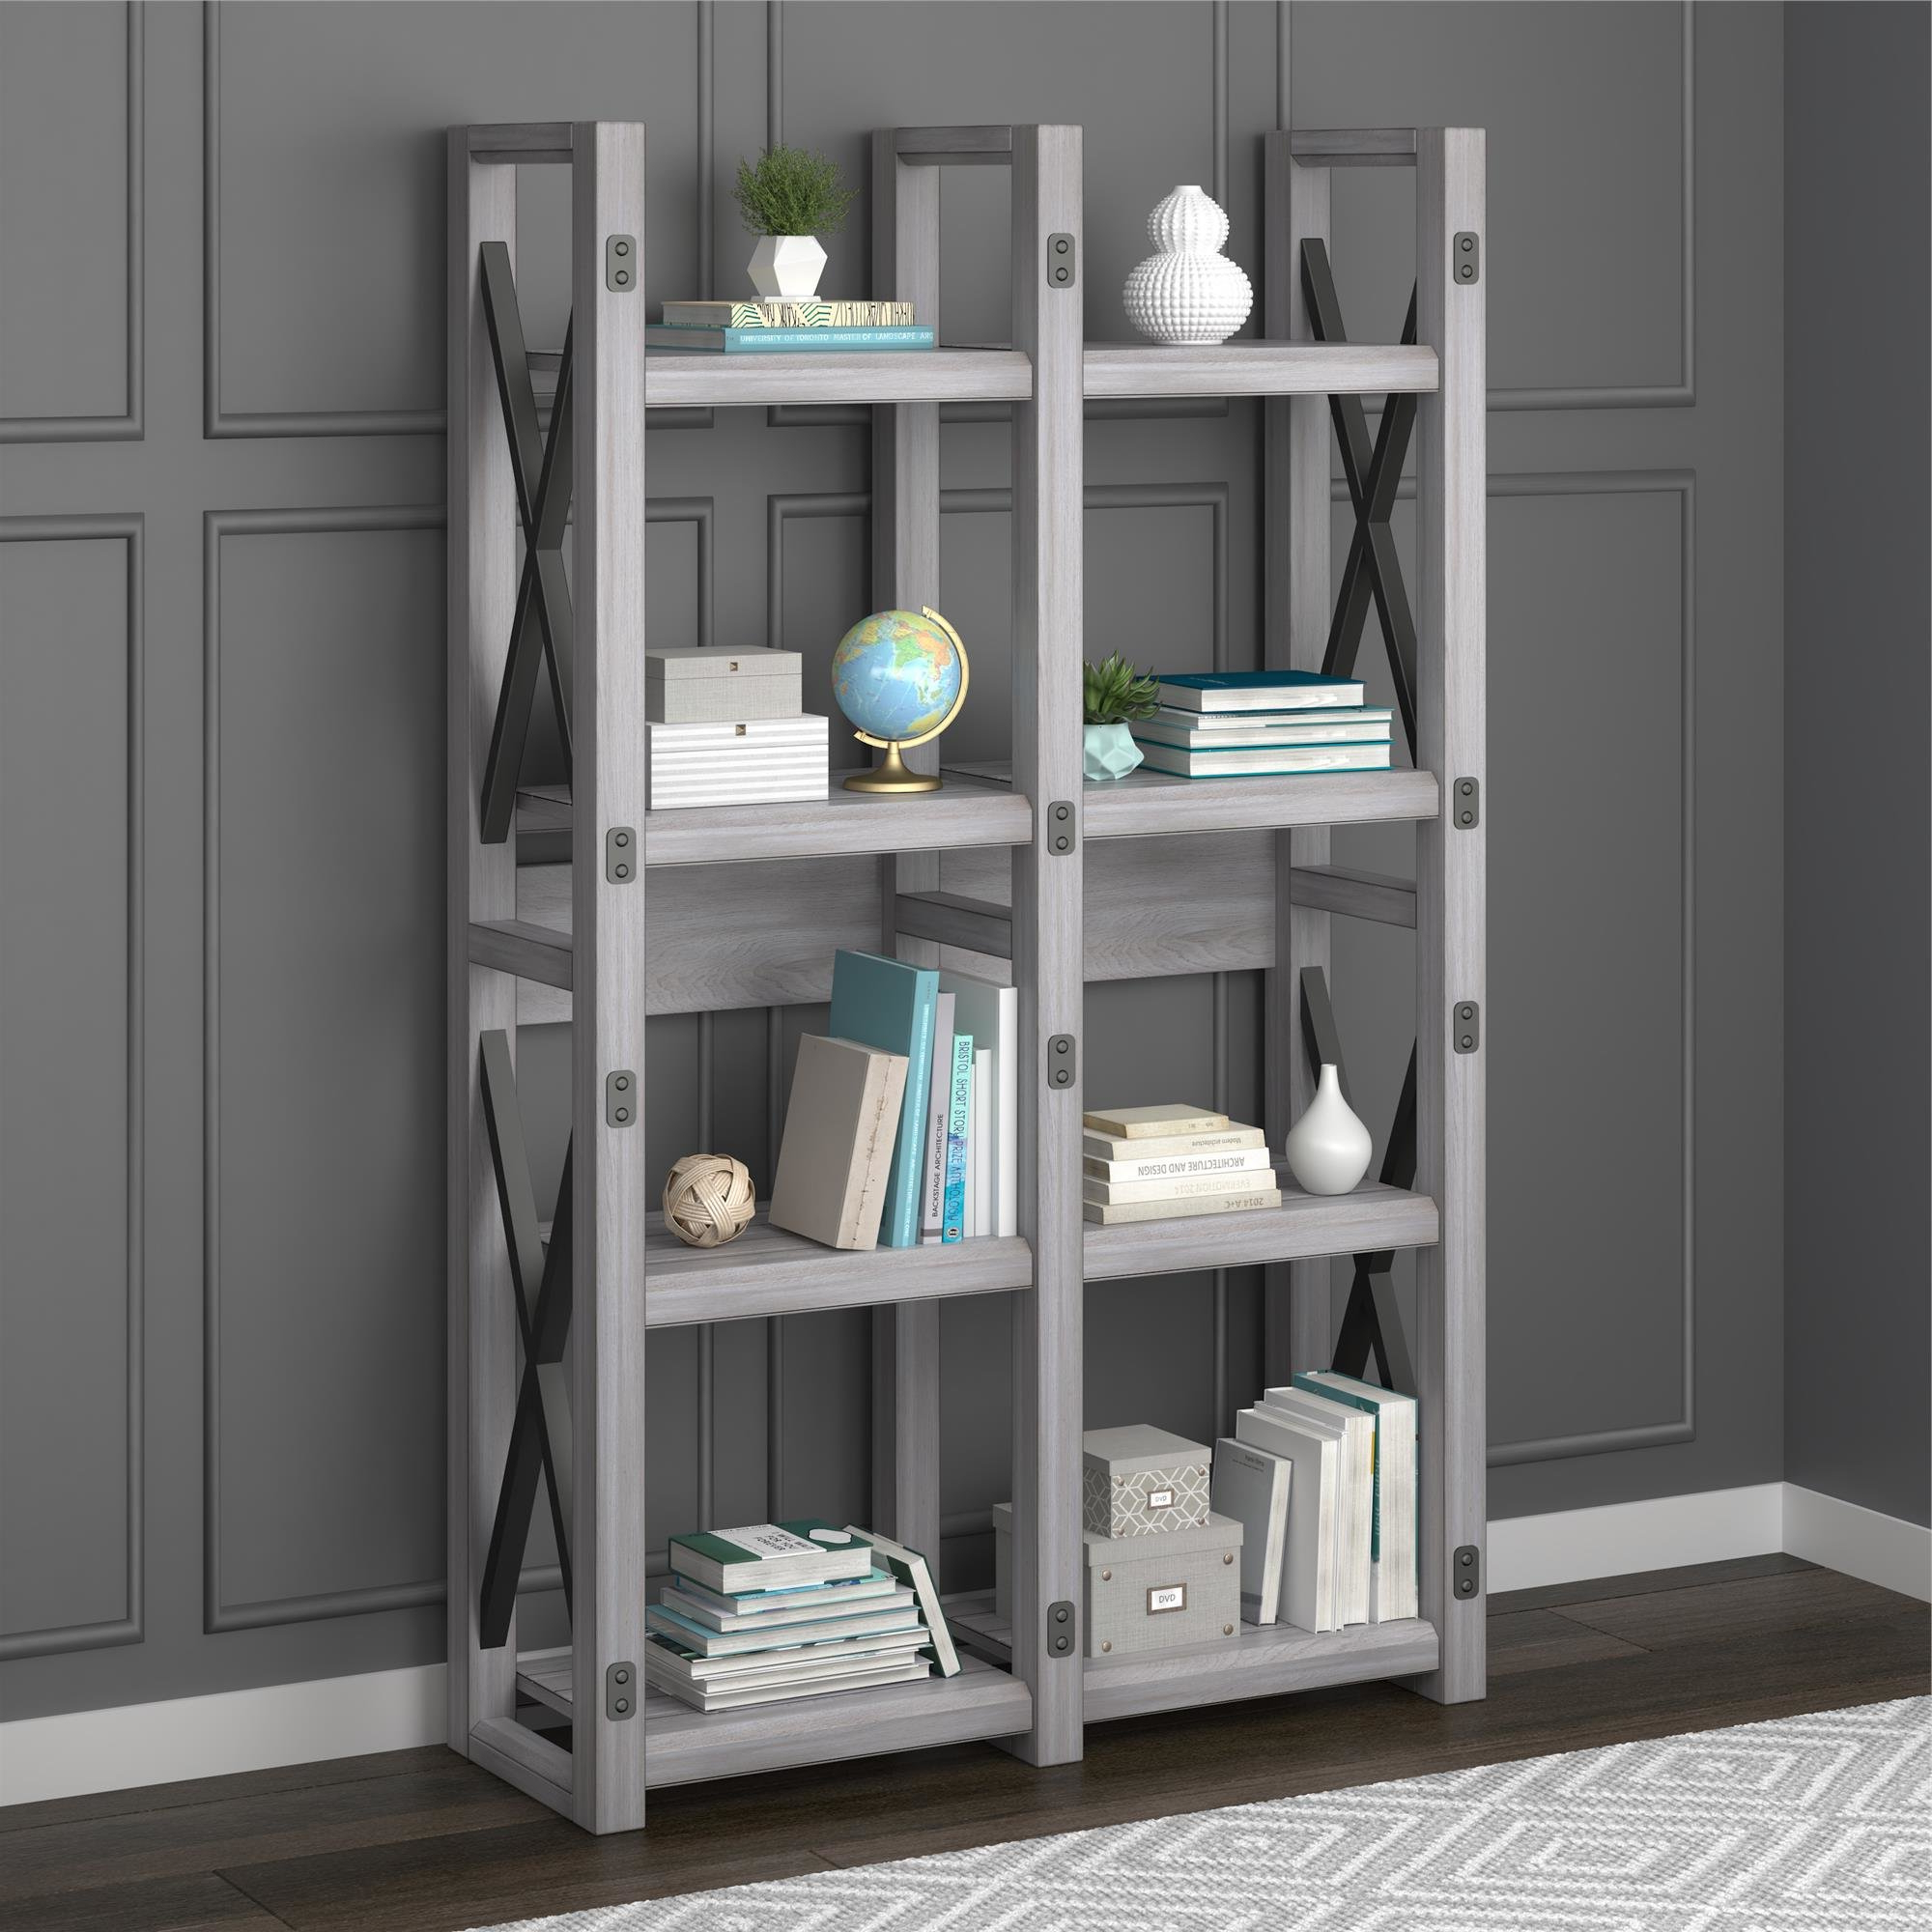 Gladstone Etagere Bookcase For Fashionable Gladstone Etagere Bookcases (View 3 of 20)